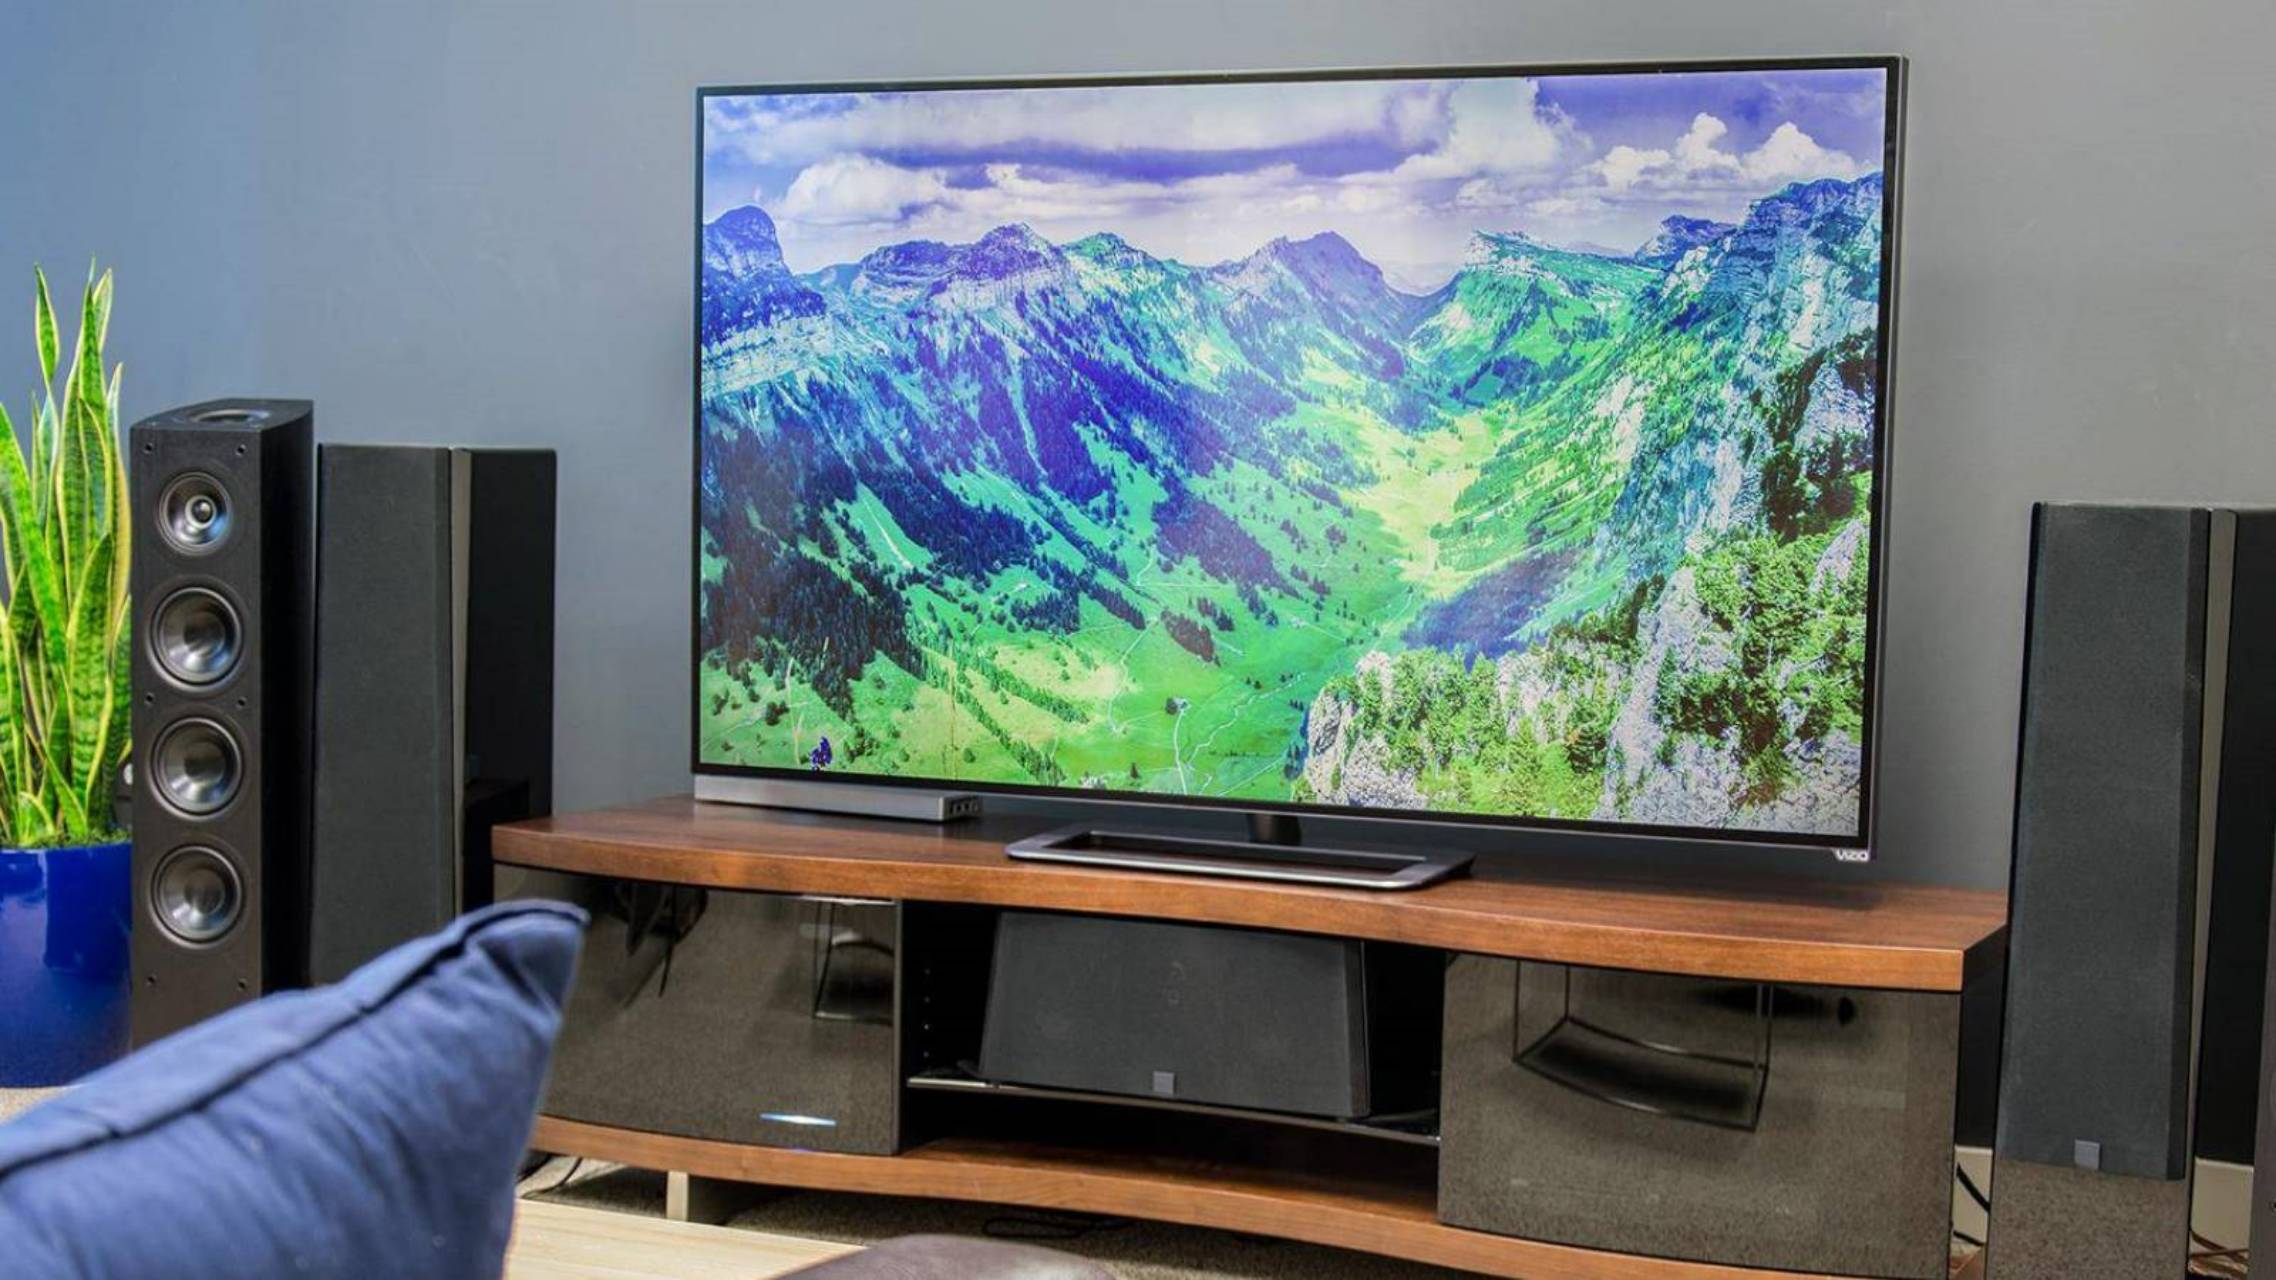 Emag Tvs With Exclusive Discounts After Black Friday